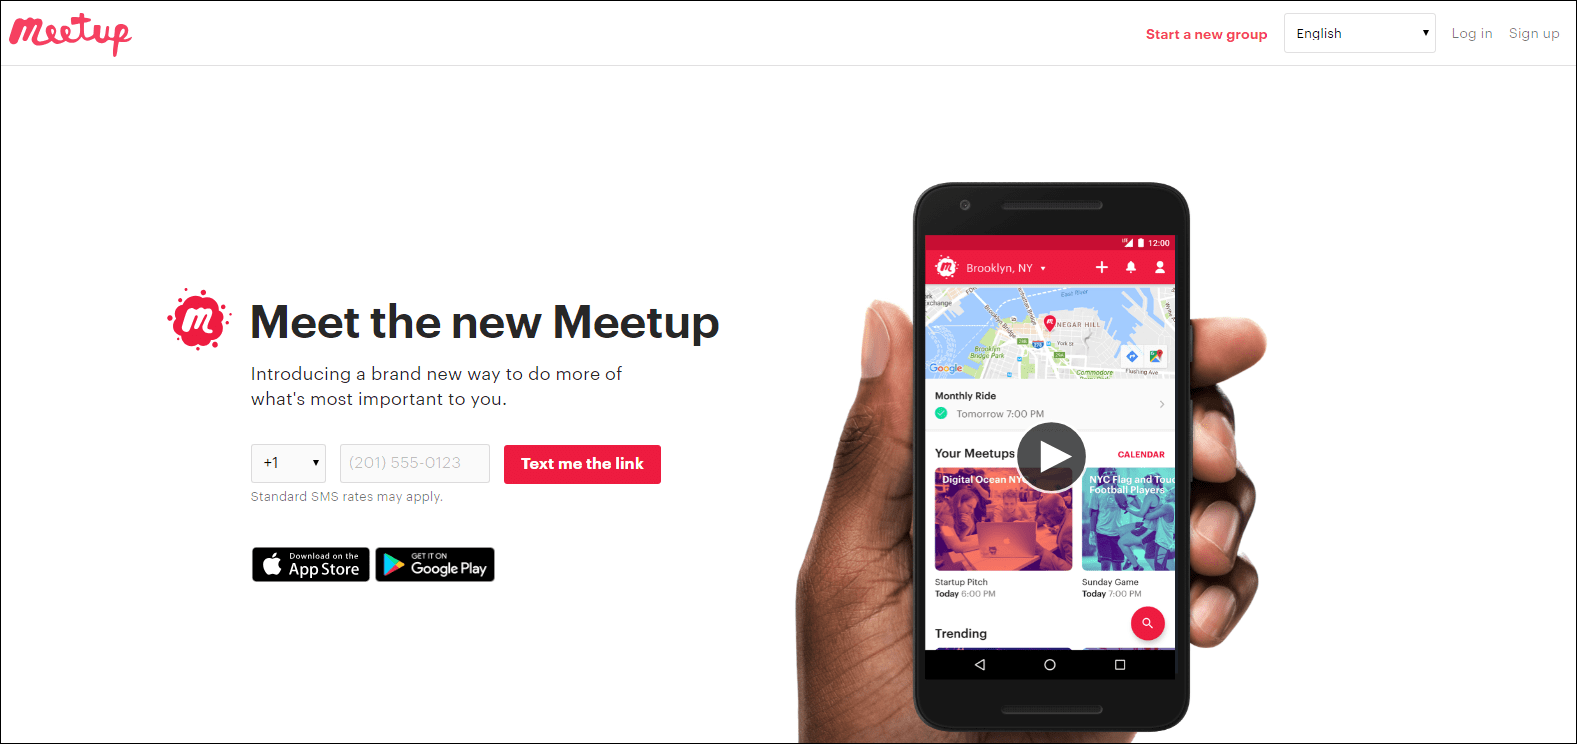 home page of Meetup event organizing website.